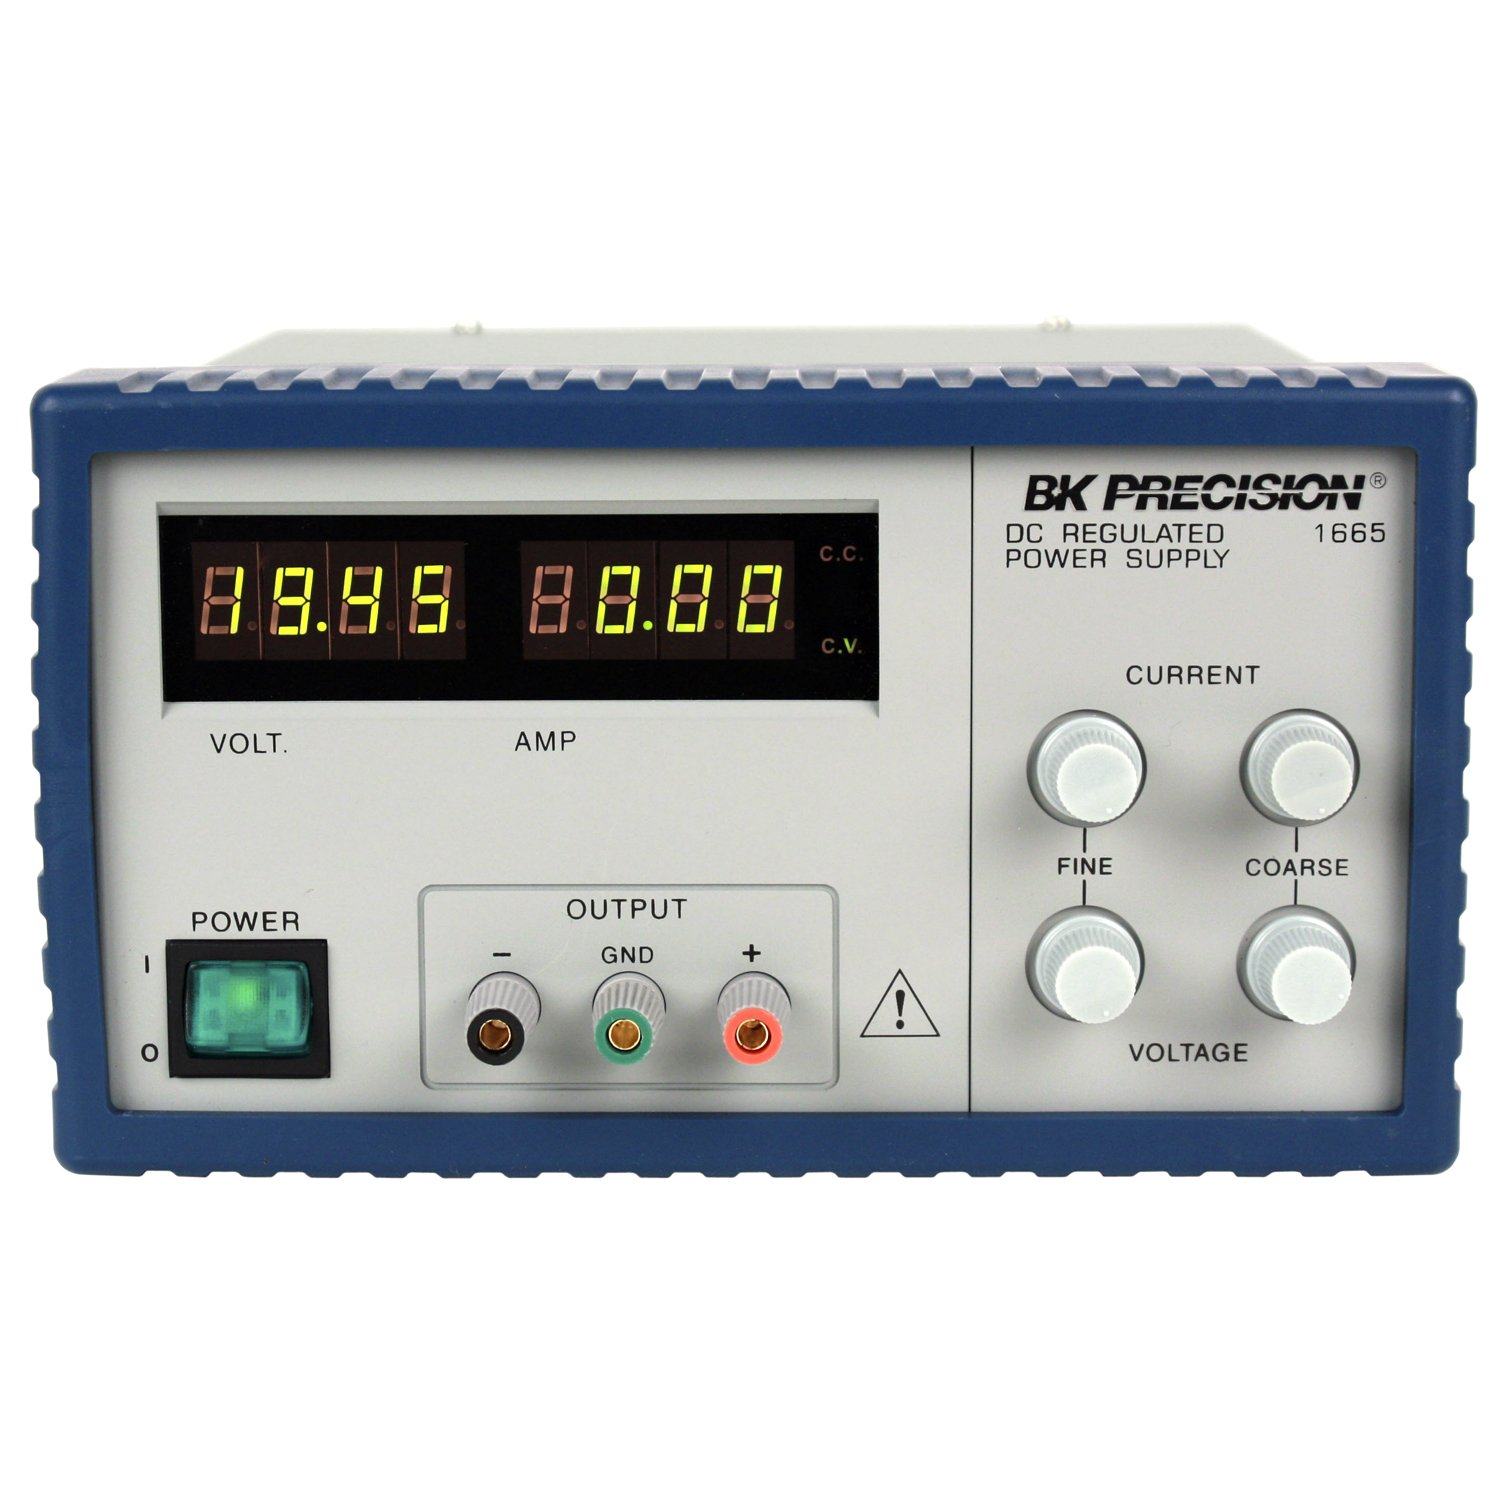 B&K Precision 1665 Bench Switching DC Power Supply Series, 1 to 19.99 Vdc, 0 to 9.999 A